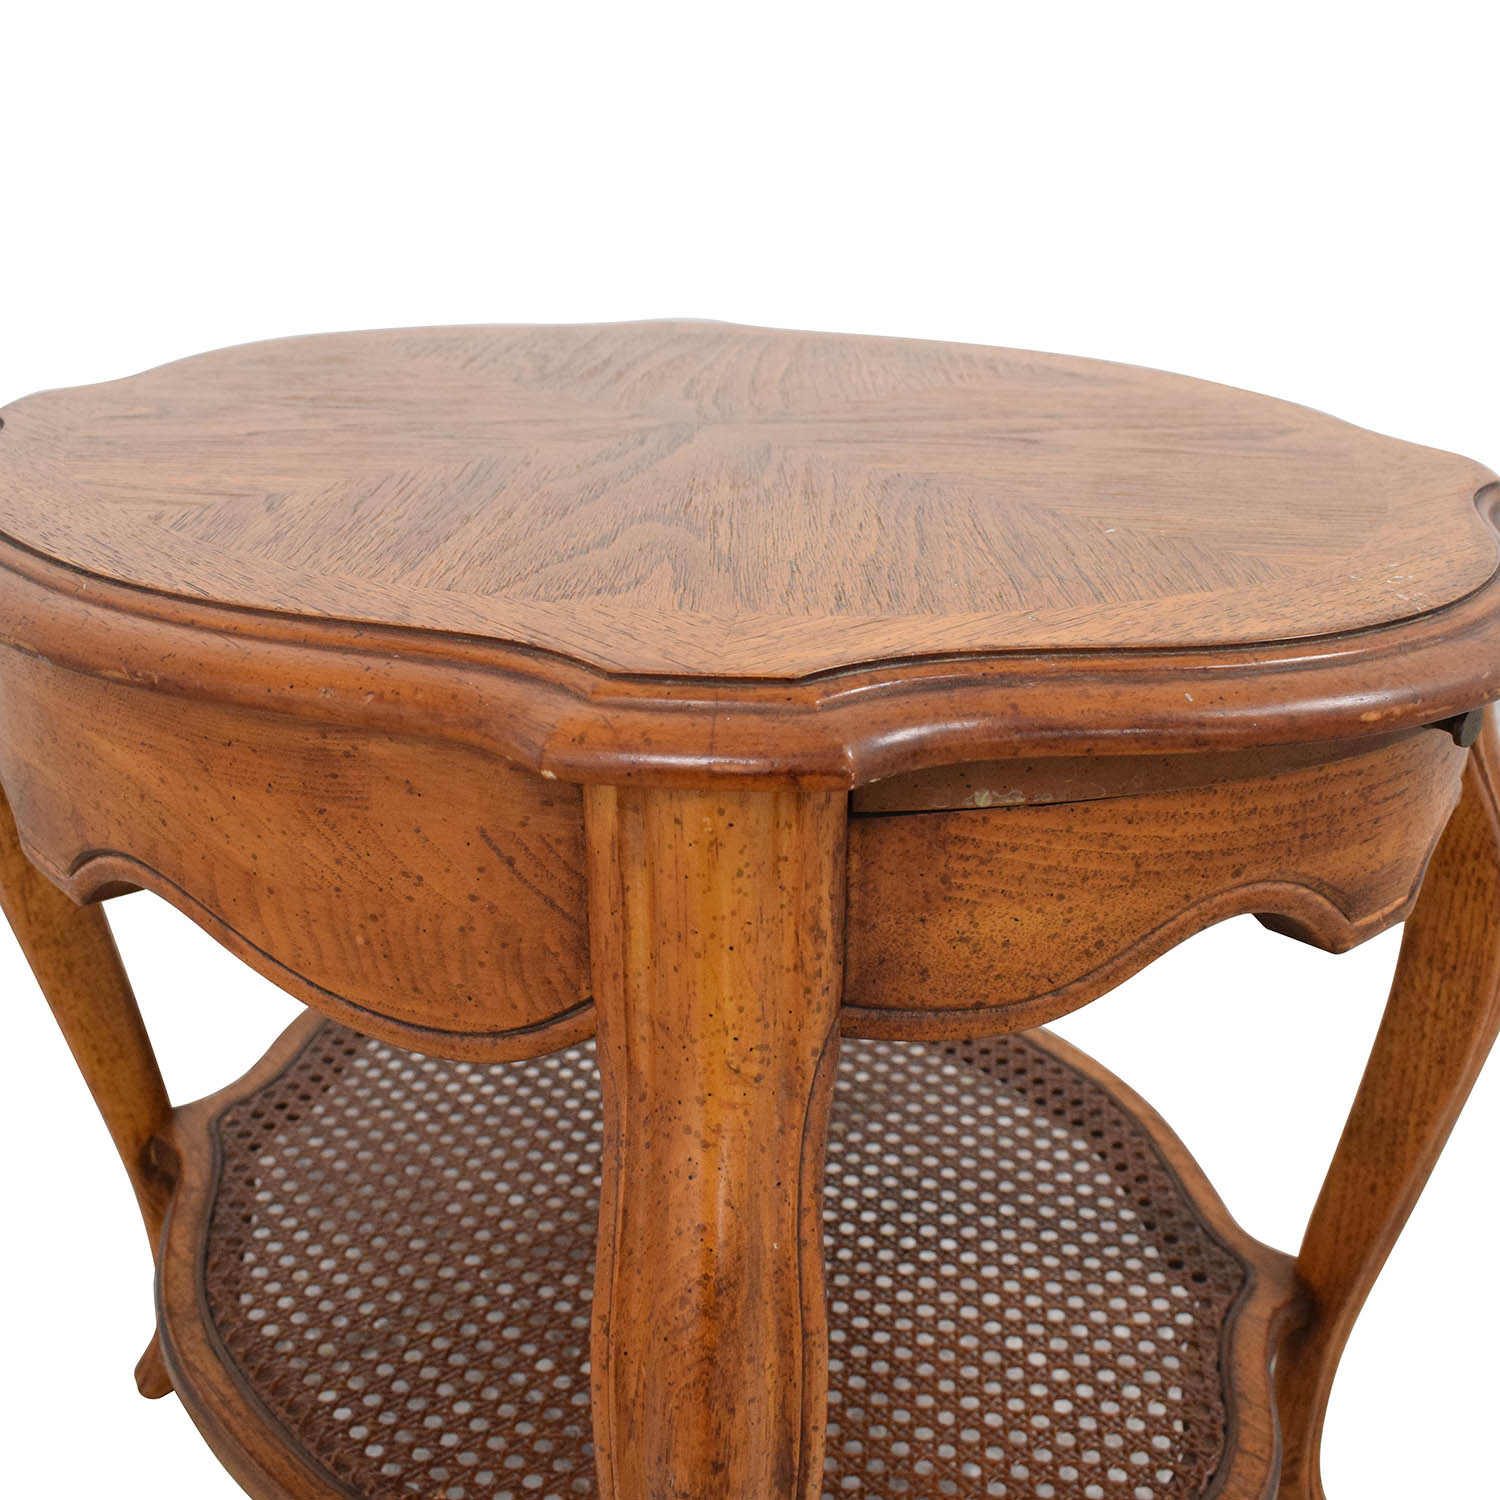 Vintage End Table with Pull Out Tray second hand